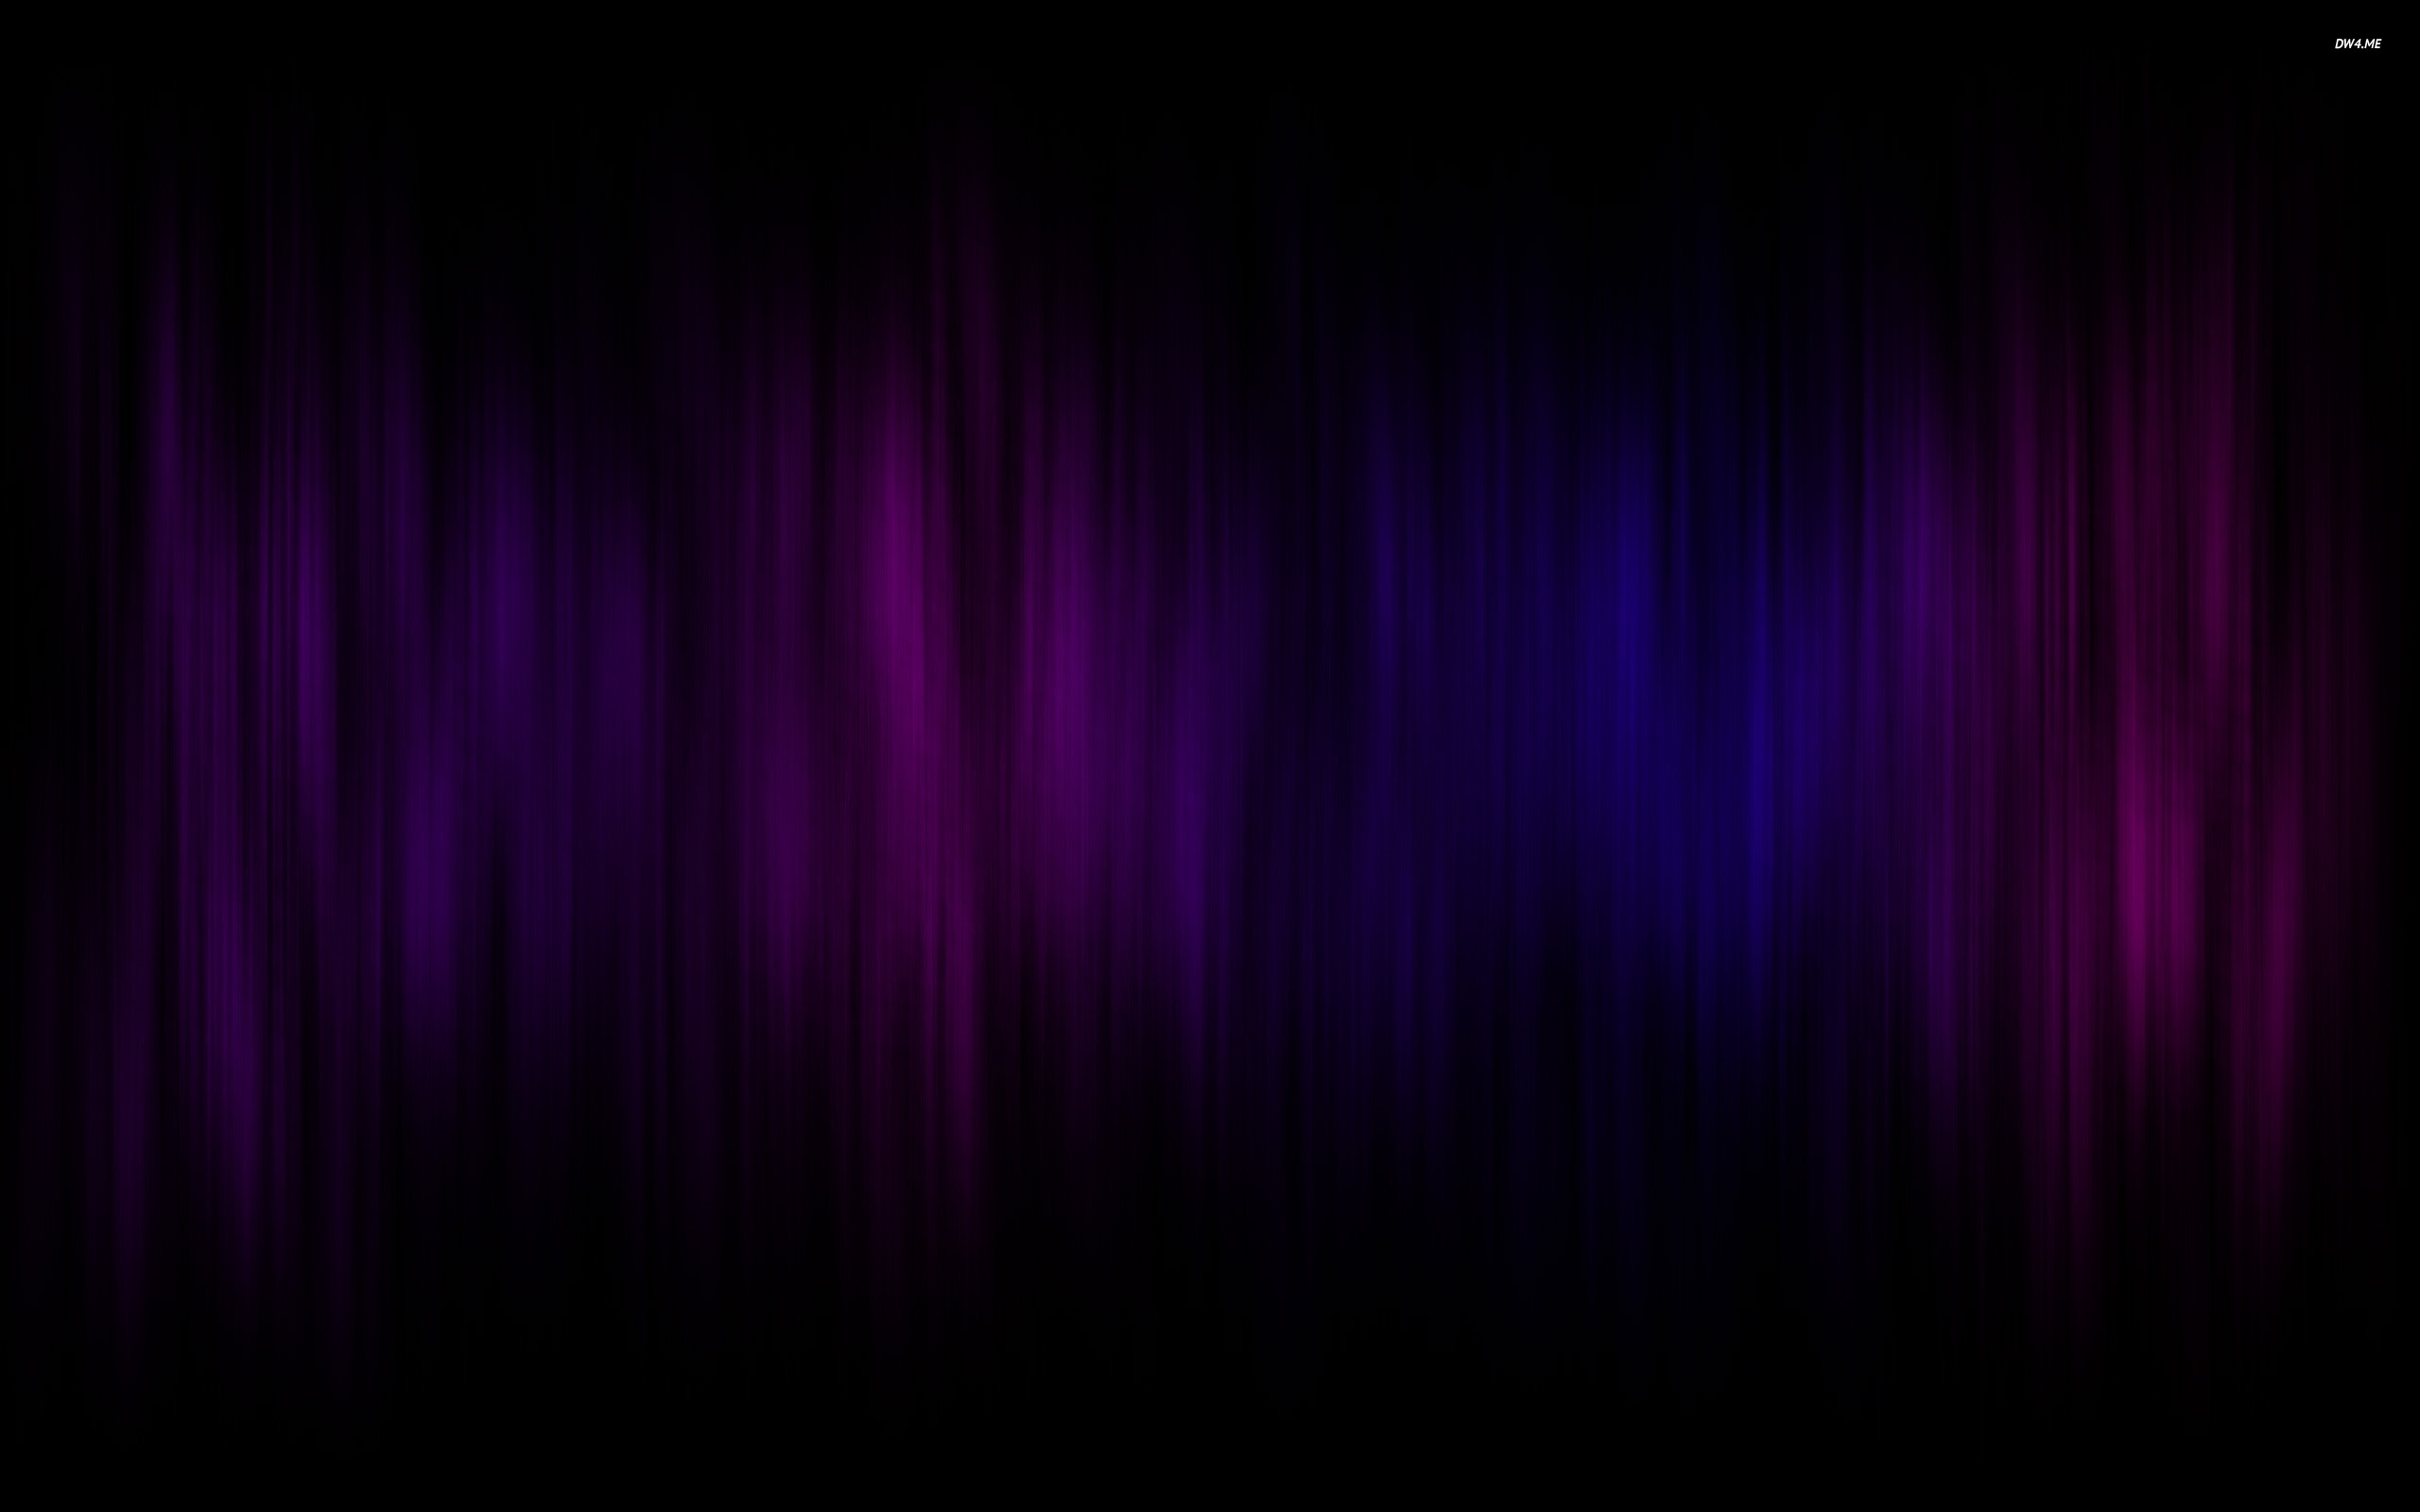 10 Top Purple And Black Wallpapers FULL HD 1920×1080 For PC Background